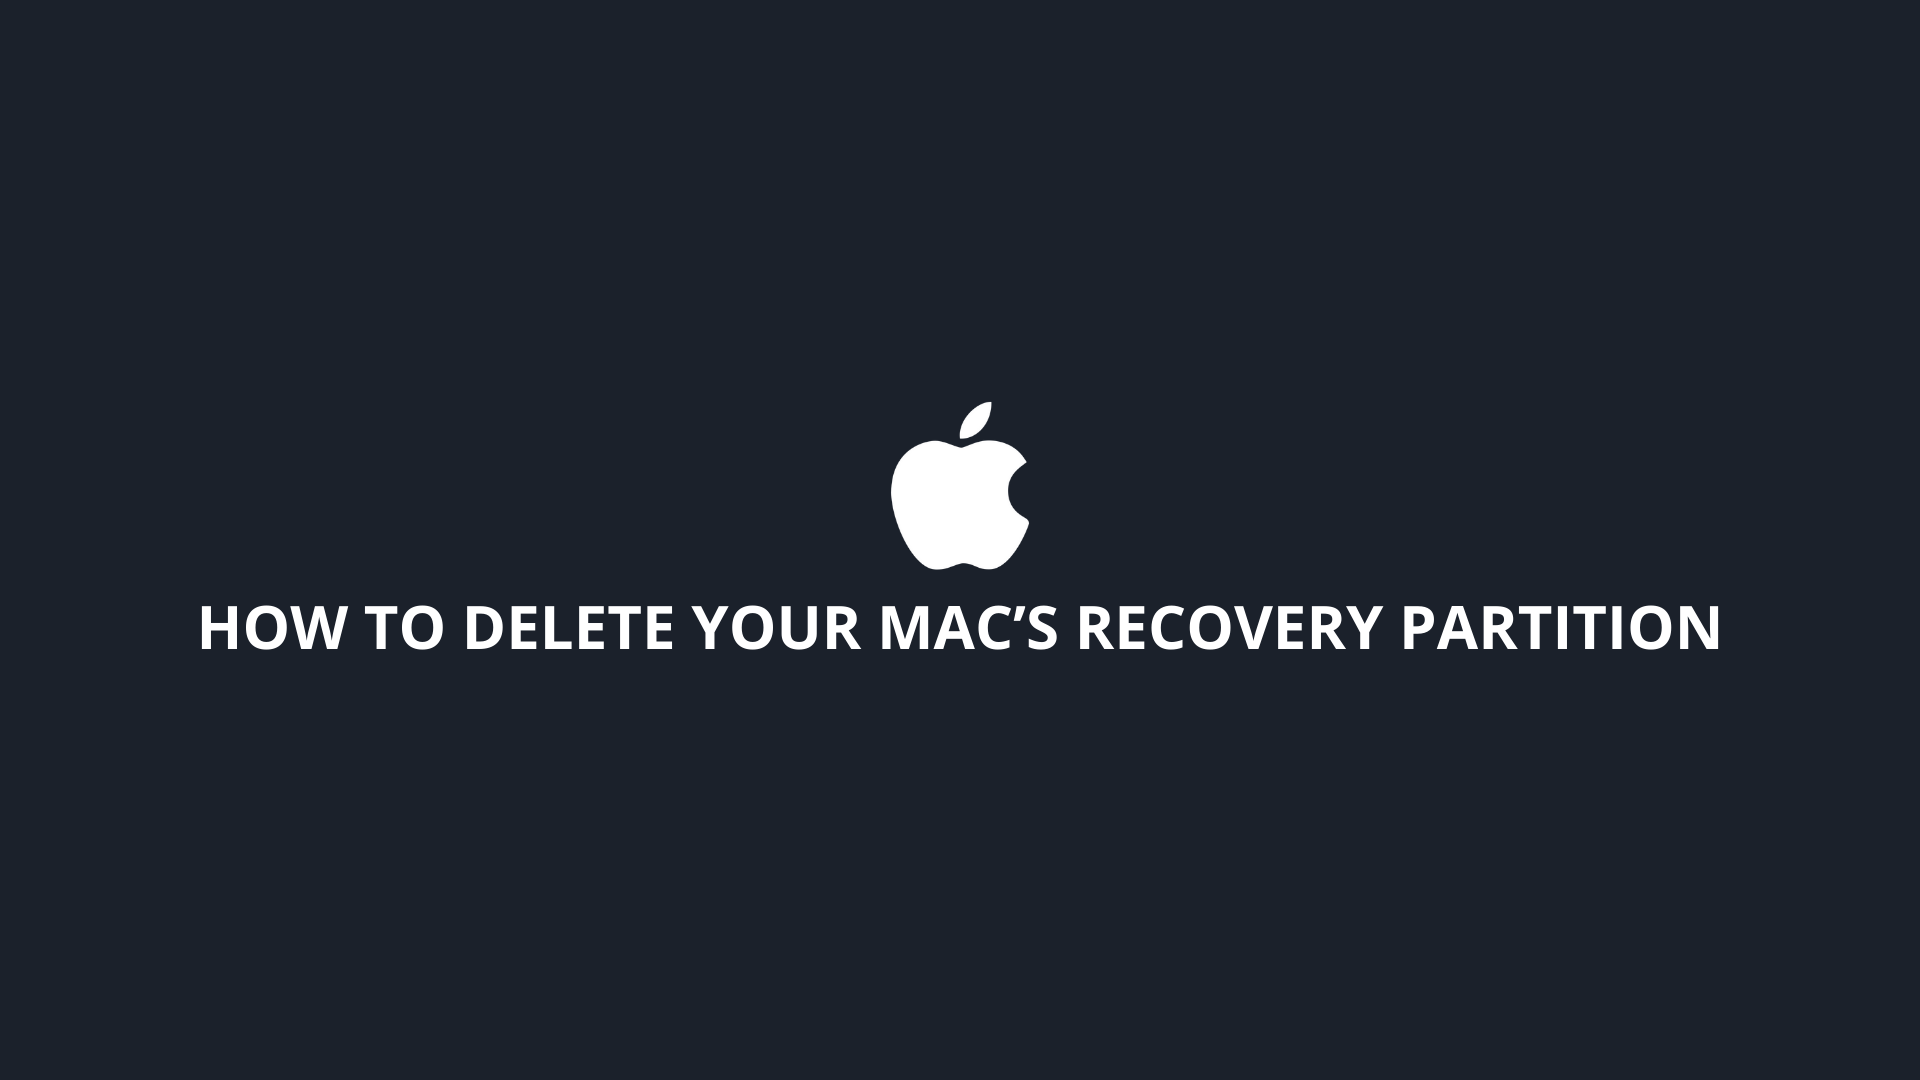 How to Delete Your Mac's Recovery Partition